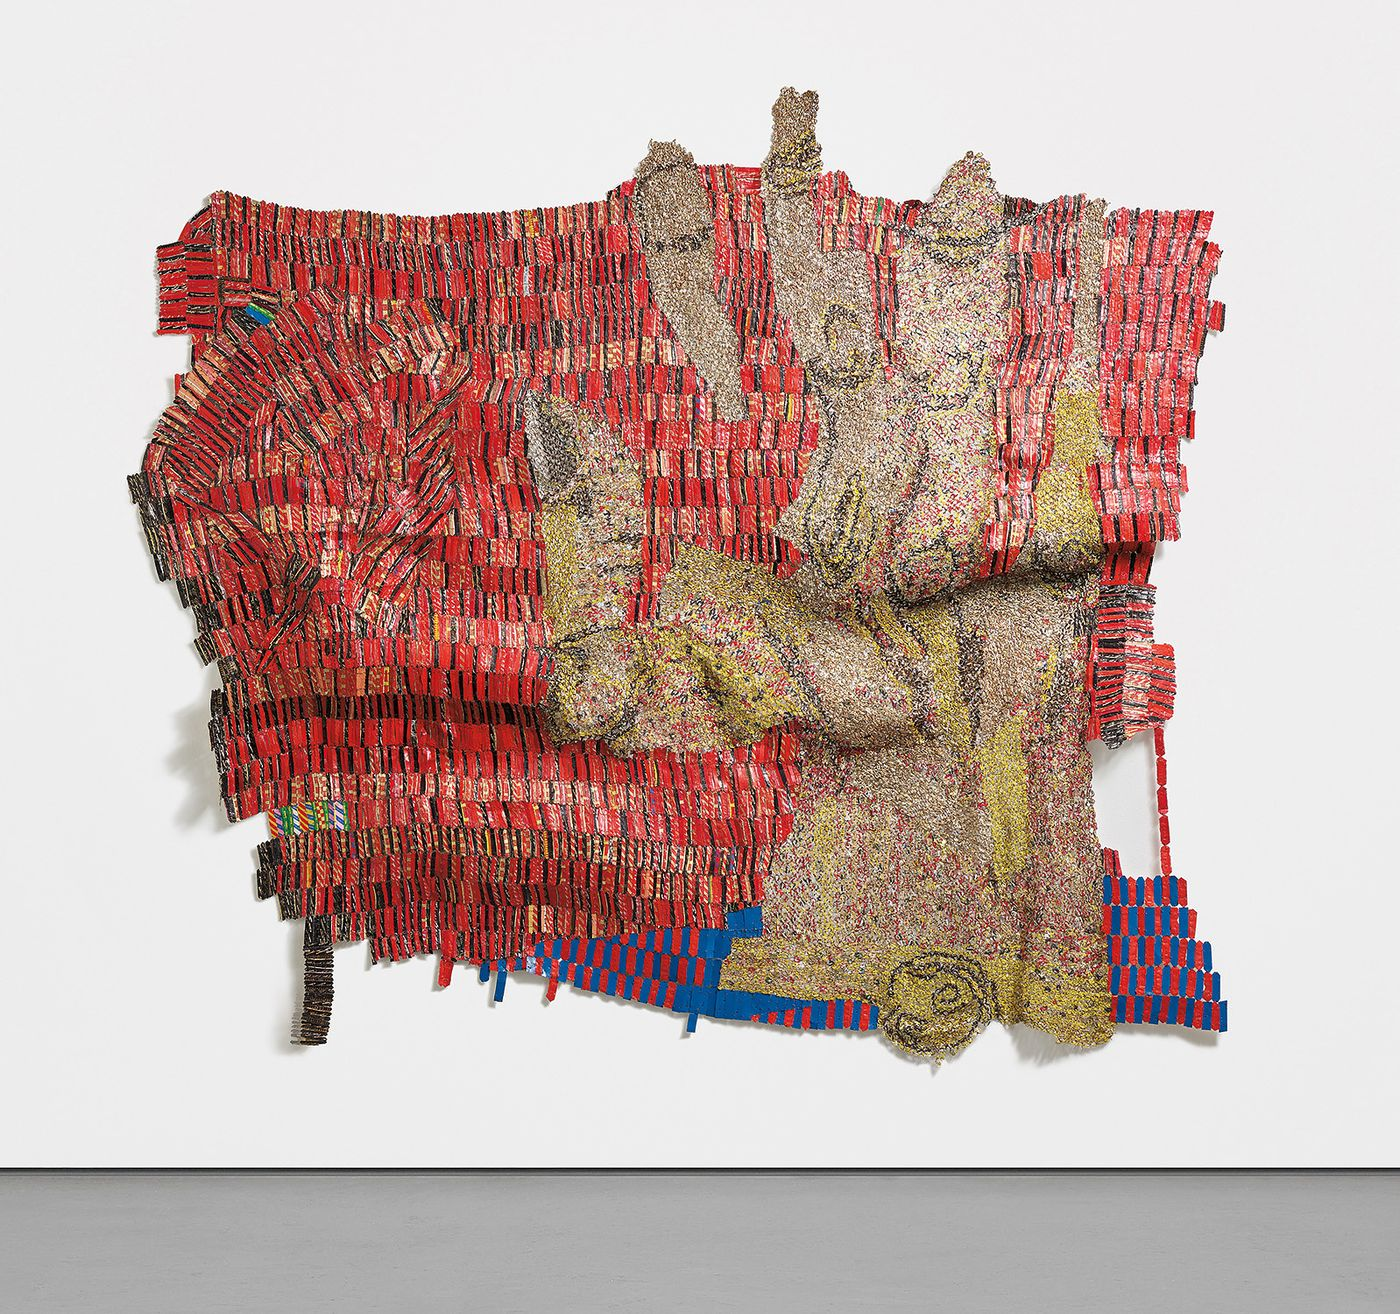 Highlighted by an exceptional El Anatsui installation, this important collection is unified by a sense of energetic complexity.